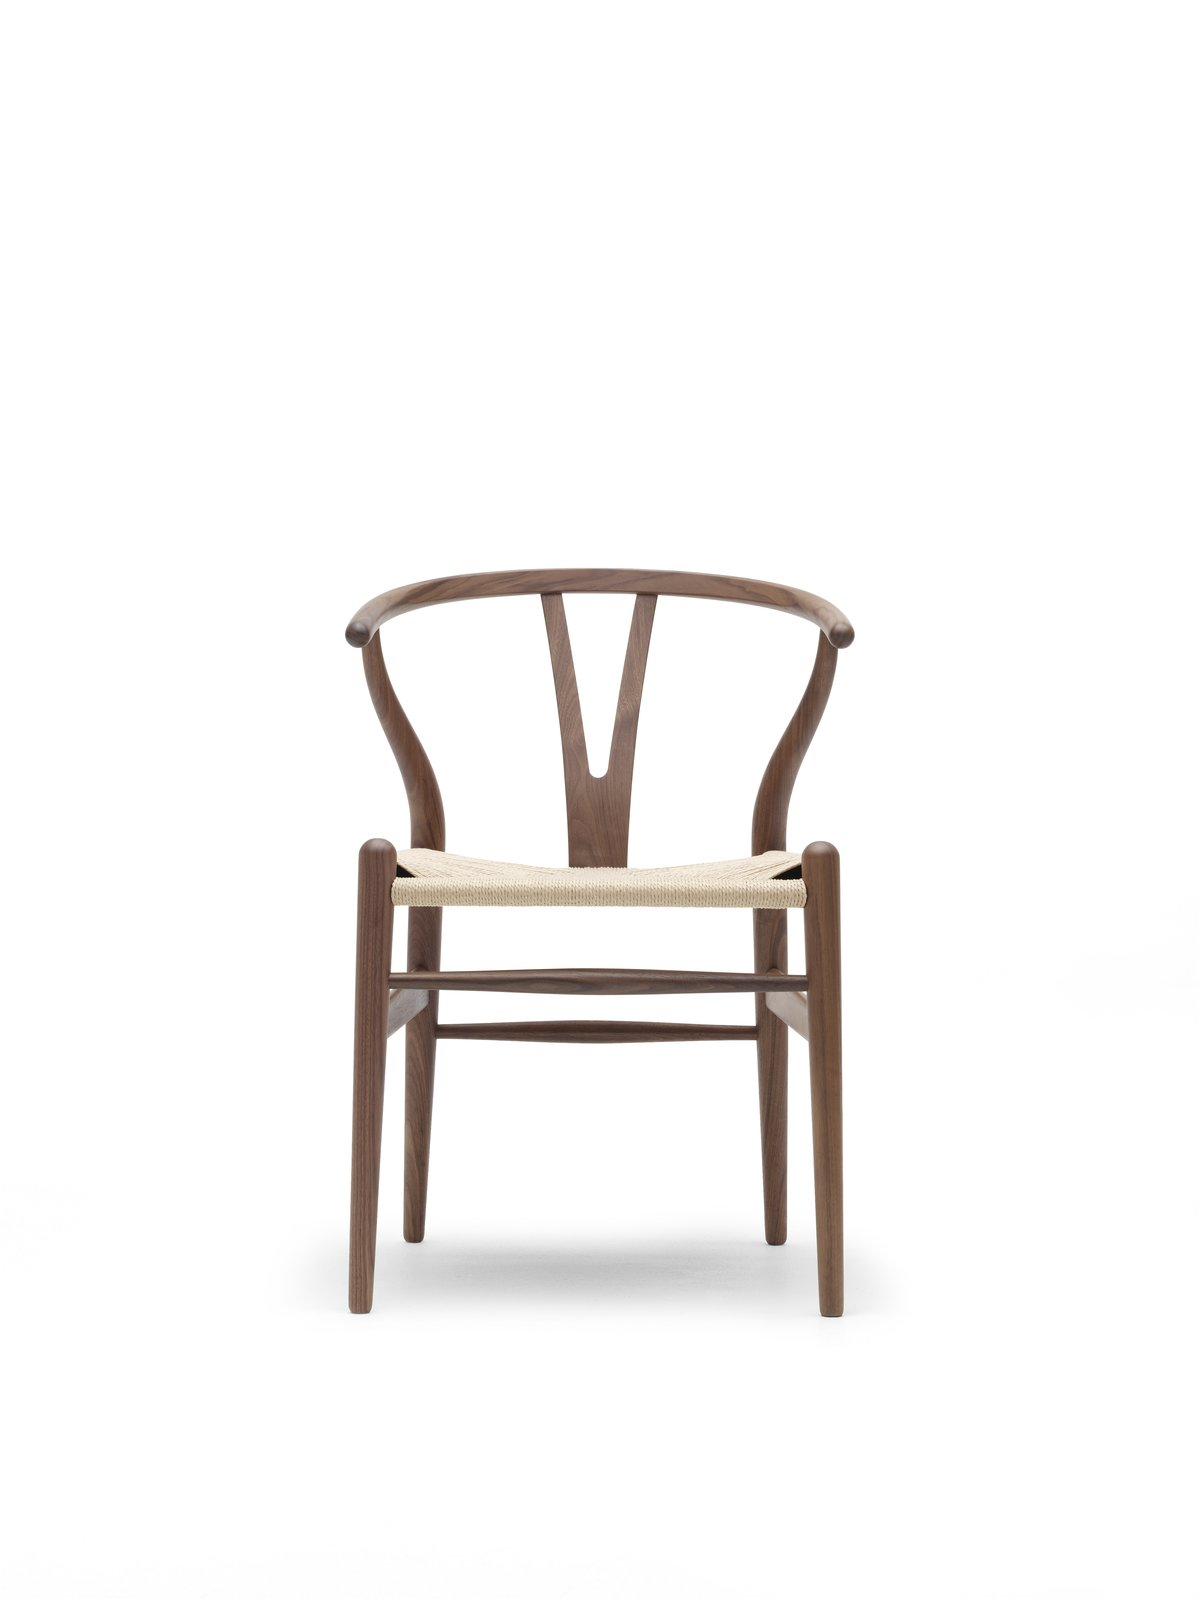 The Wishbone Chair (1949), also known as the Y Chair, marries a hand-woven seat and steam-bent frame. The chair, an undisputed modern icon, has been in continuous production since its introduction in 1950. Inspired by portraits of Danish merchants sitting in Ming chairs, this was the culmination of a series of chairs created in the '40s. Photo courtesy Carl Hansen & Son.  Photo 3 of 9 in 8 Iconic Chairs by Hans Wegner